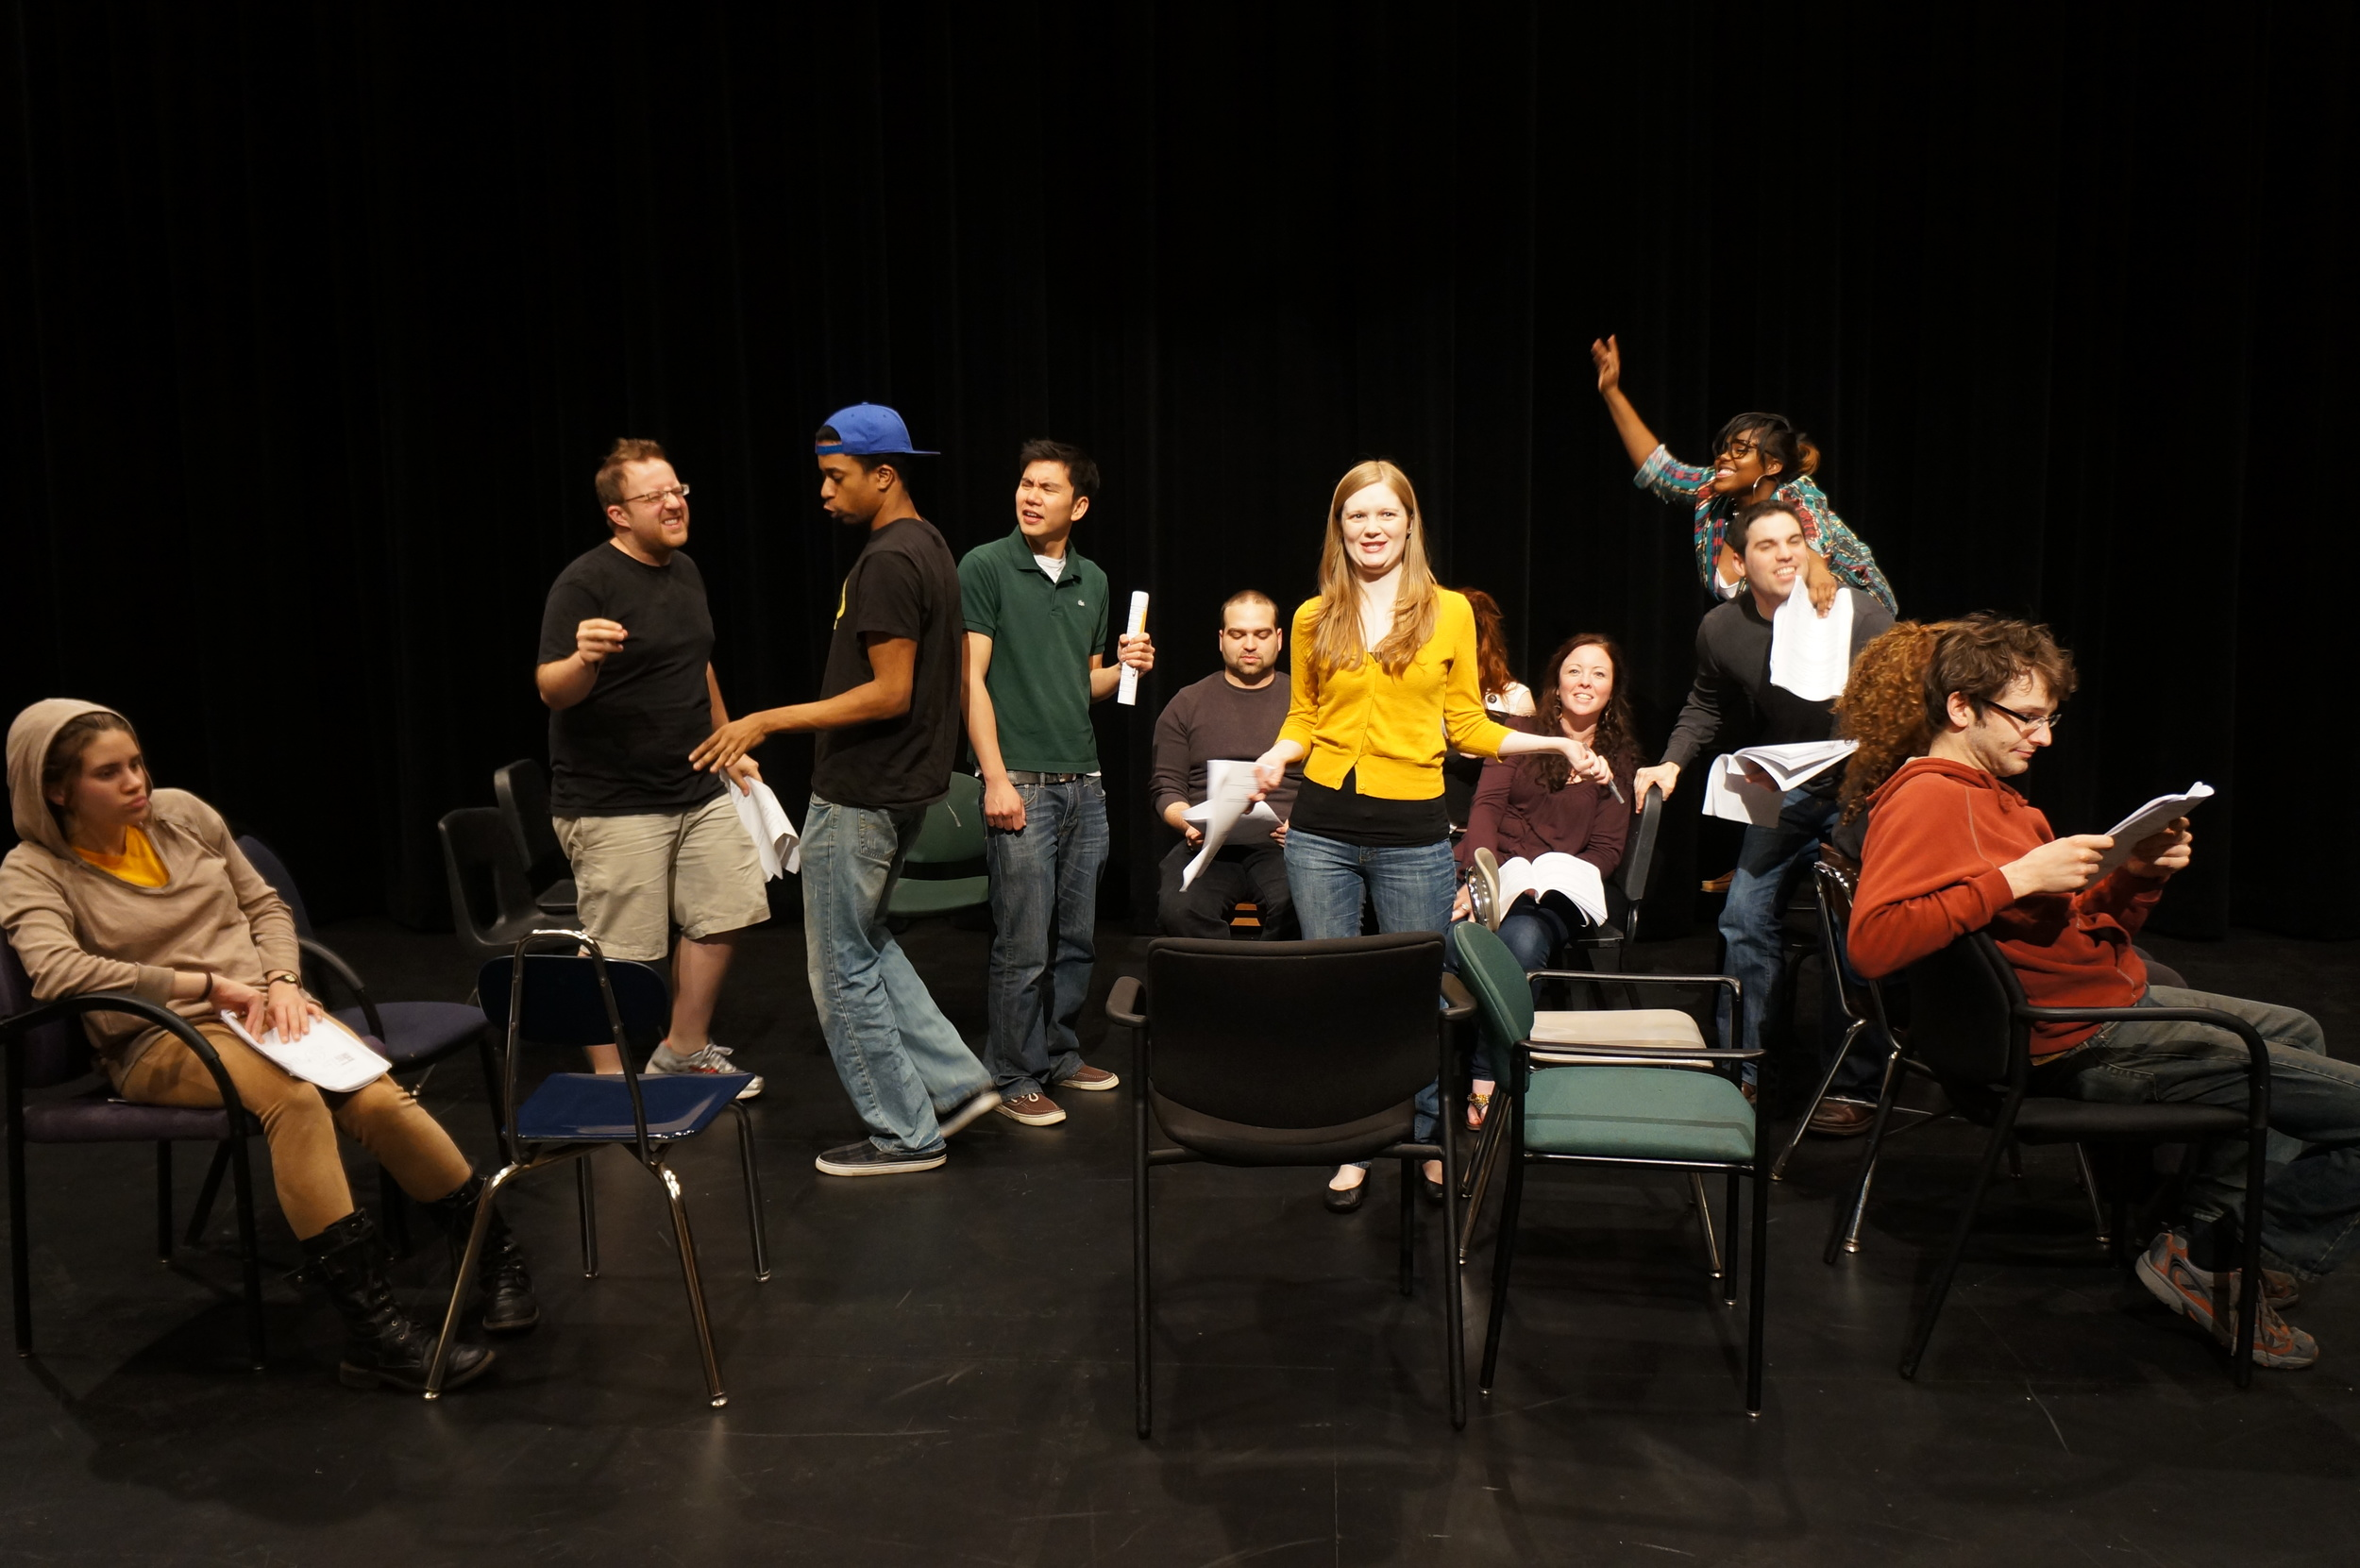 'EL Stories' cast in rehearsal for our newest run debuting June 2